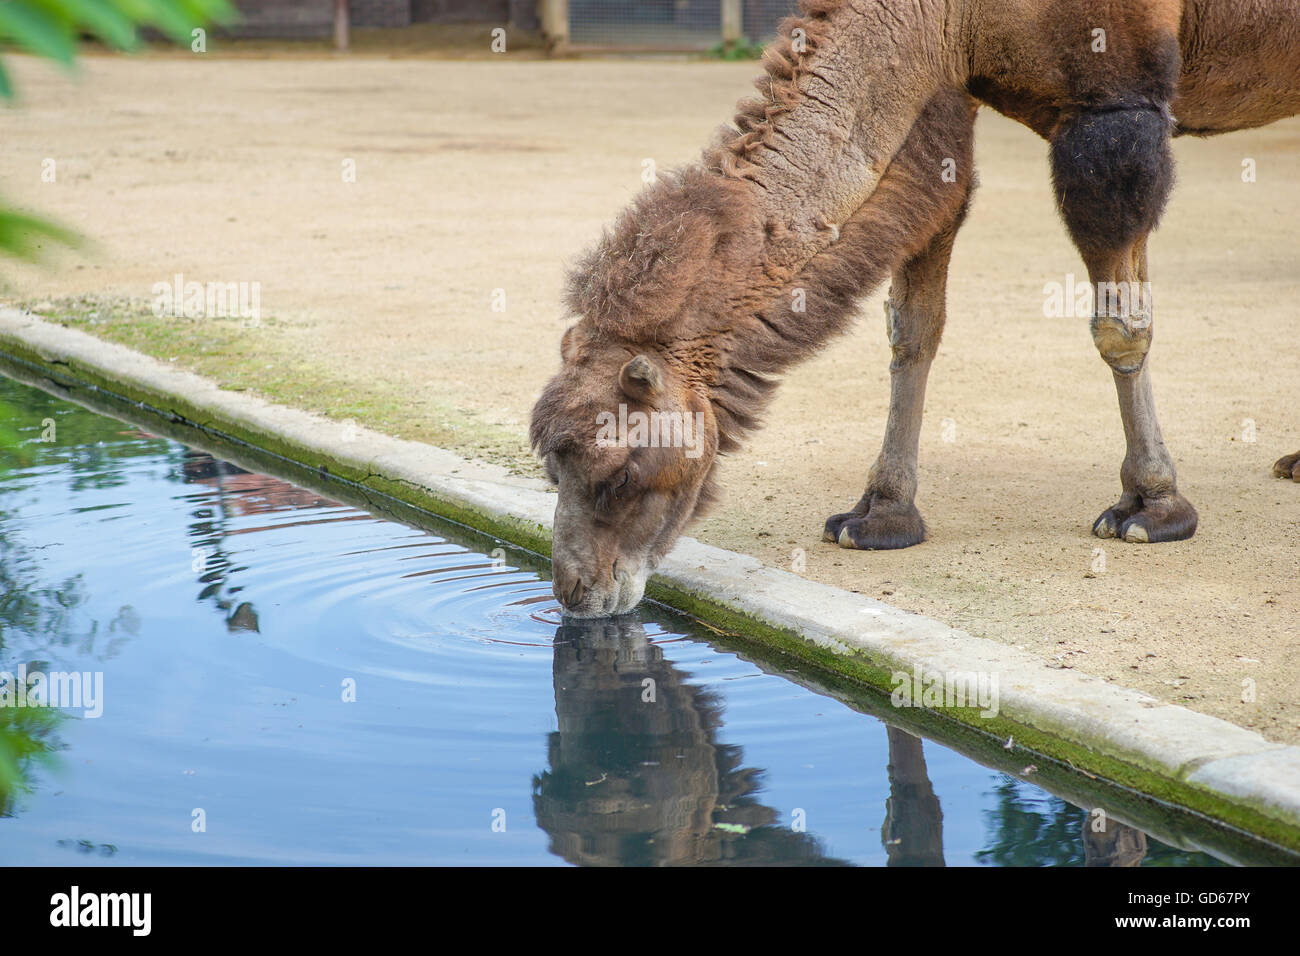 Camel is drinking. Photograph is taken in zoo Frankfurt / M Germany - Stock Image